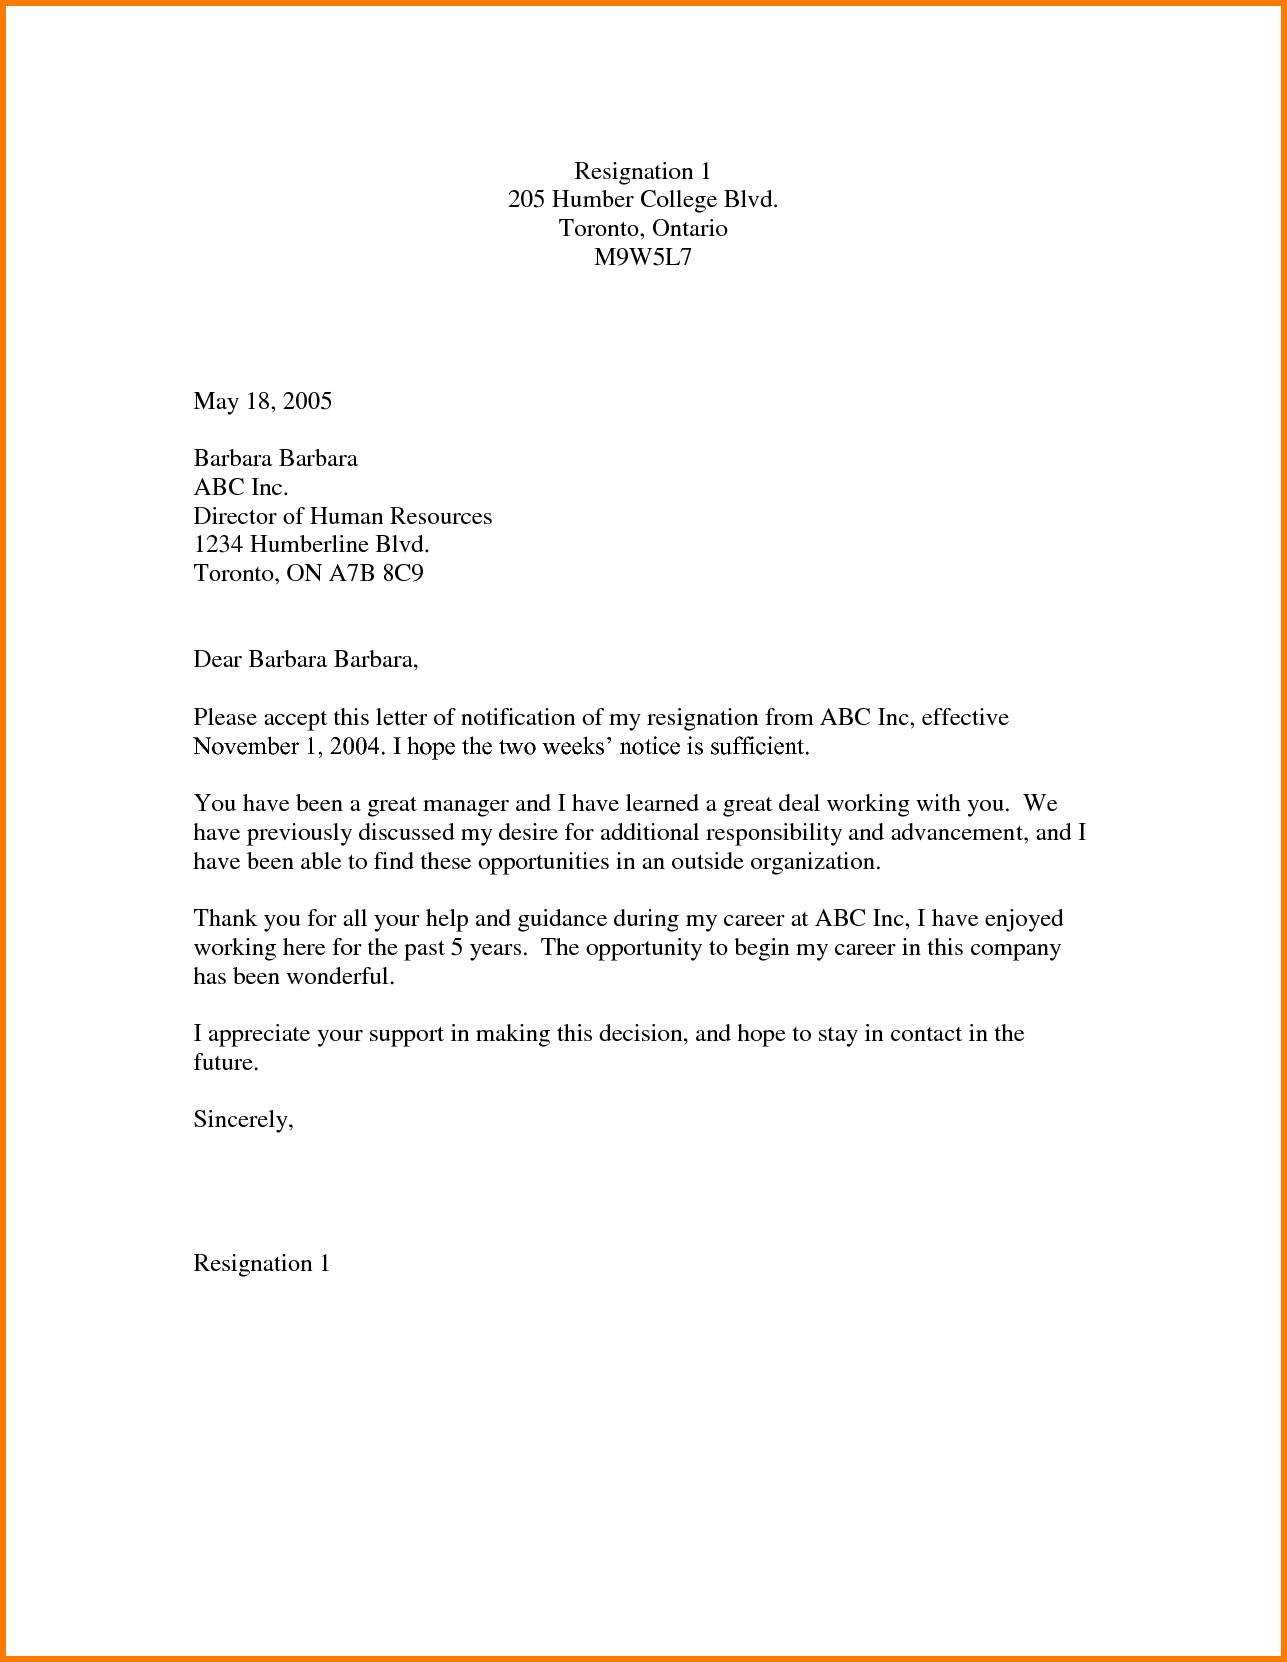 Employment Acceptance Letter Template - How to Write An Acceptance Letter for A Job Awesome Leaving Job